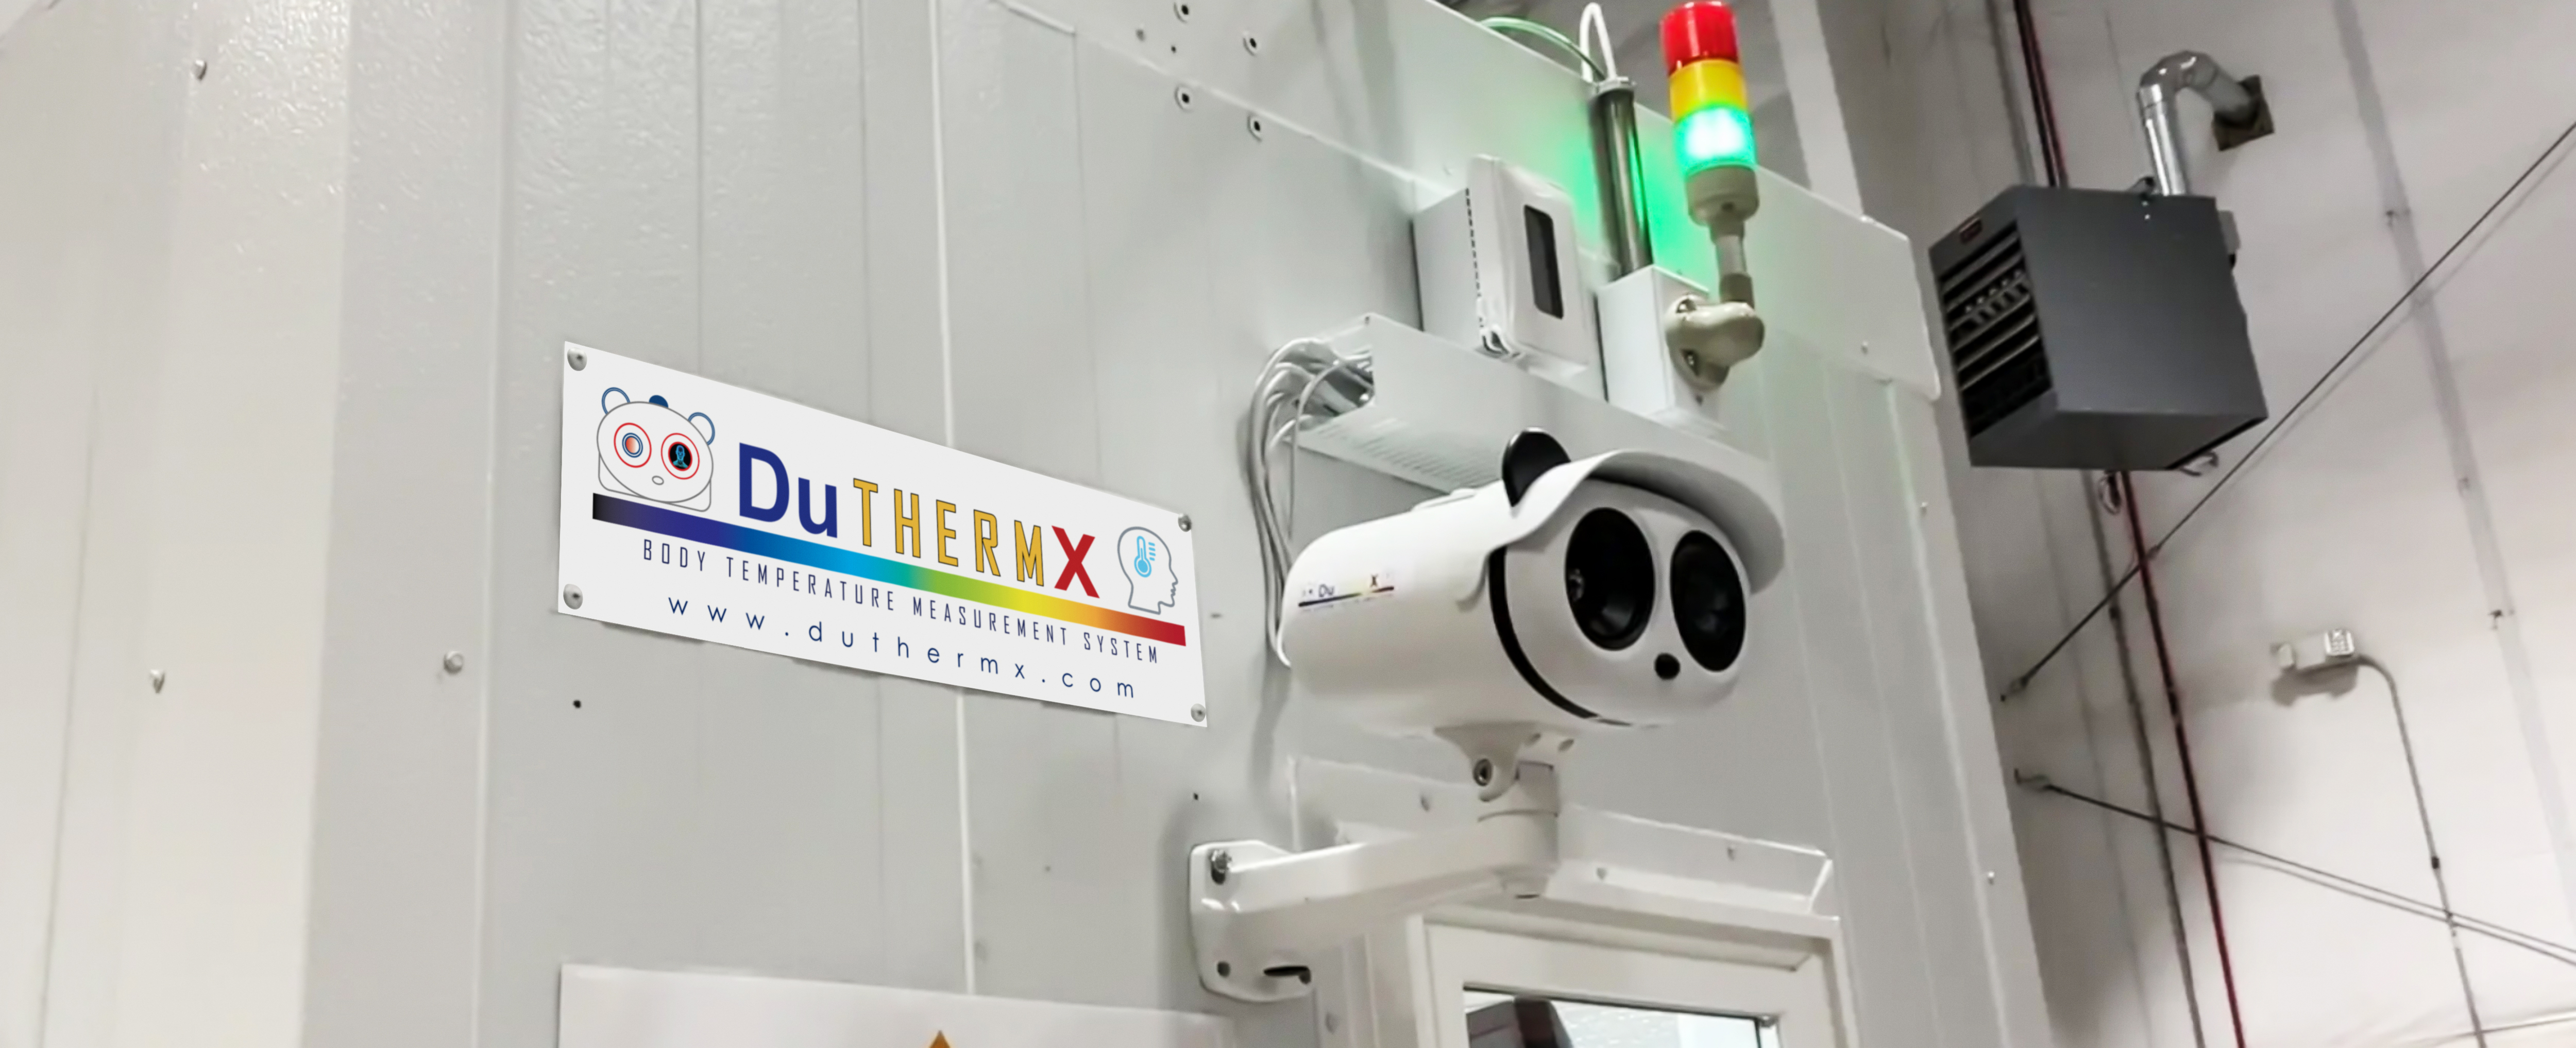 BODY TEMPERATURE CAMERA SYSTEM - DUTHERMX